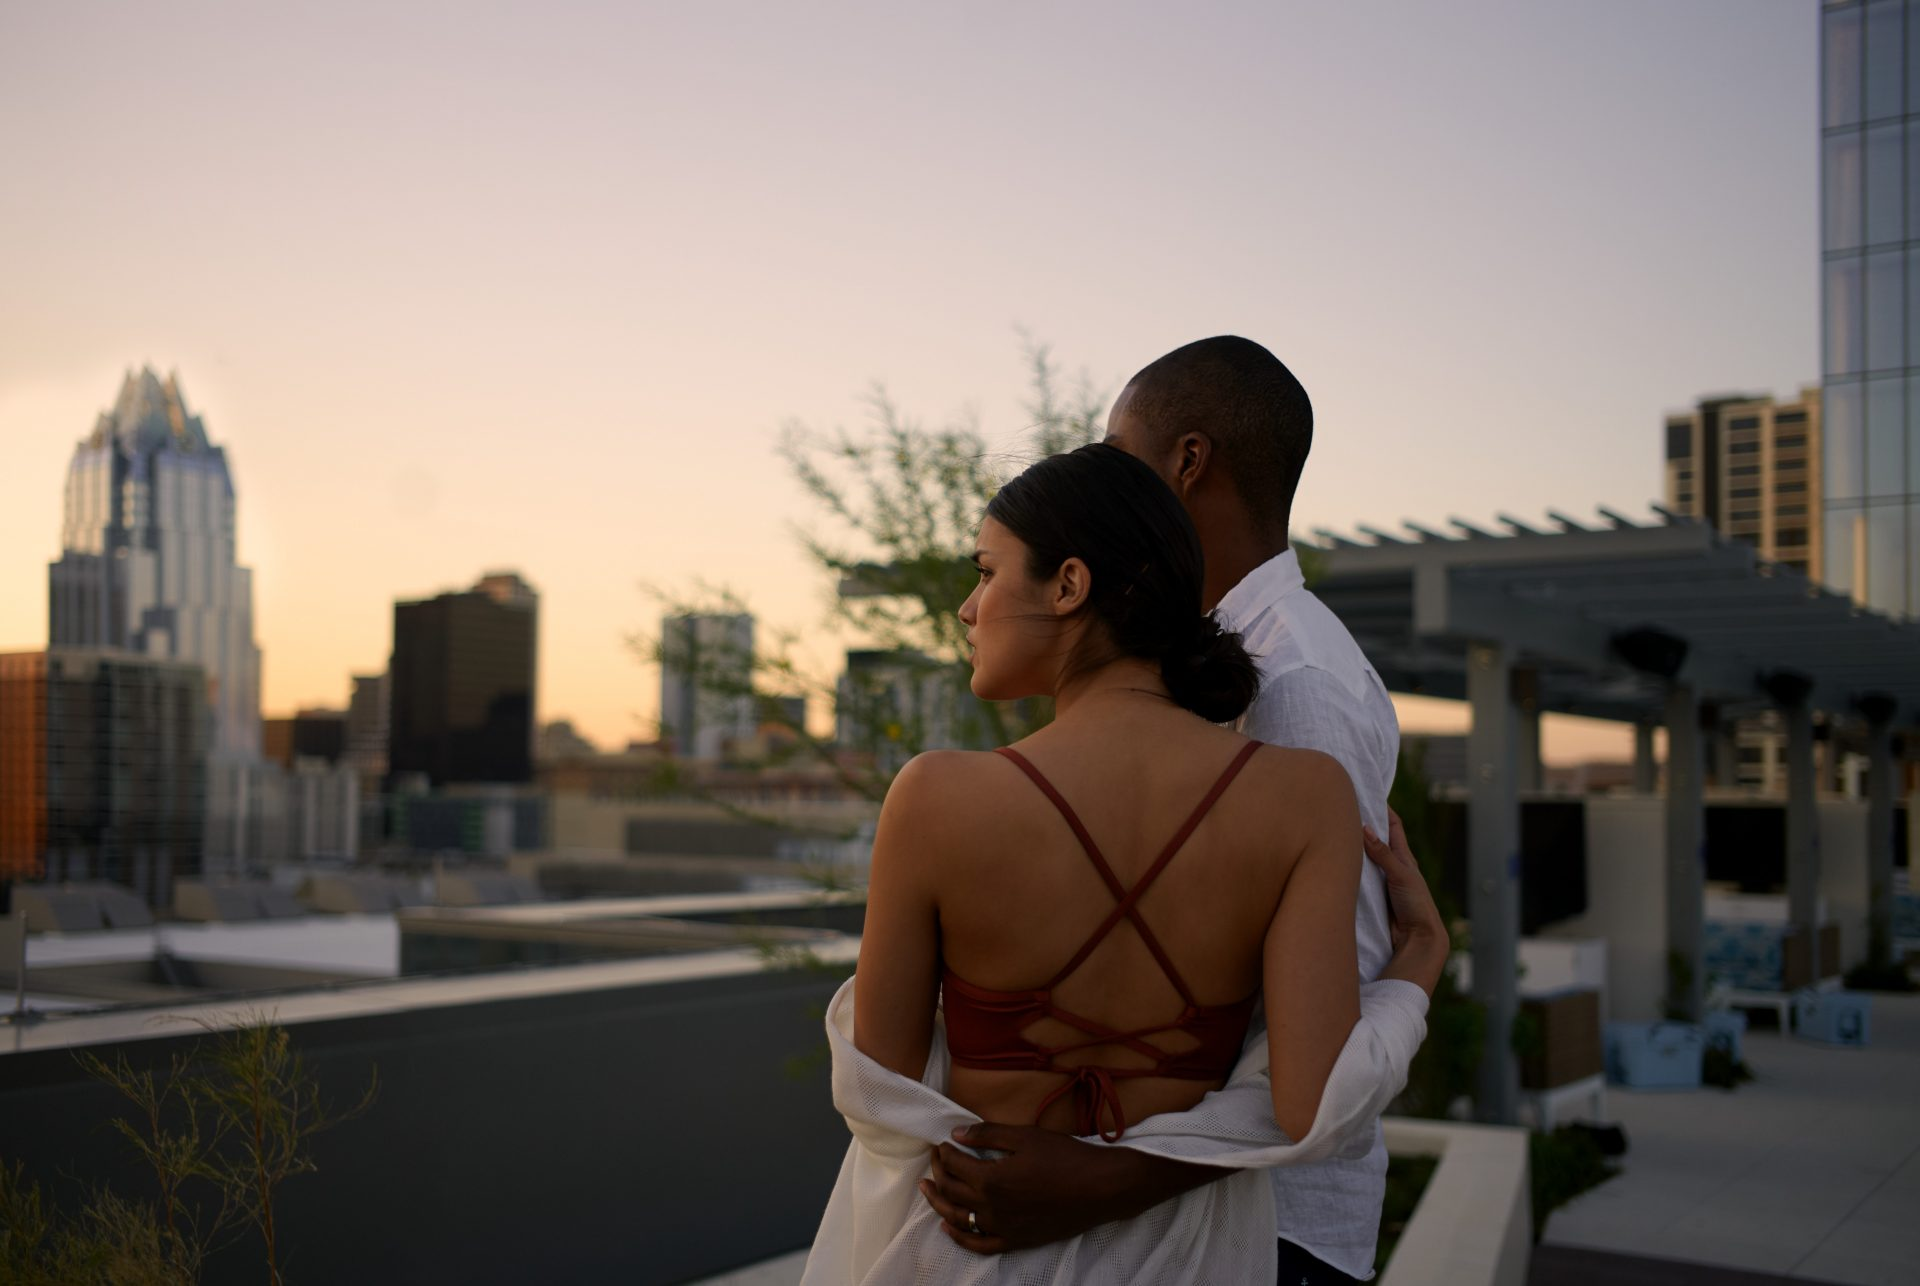 Loving couple embracing while looking out to the scenic skyline city view form the outdoor pool deck area